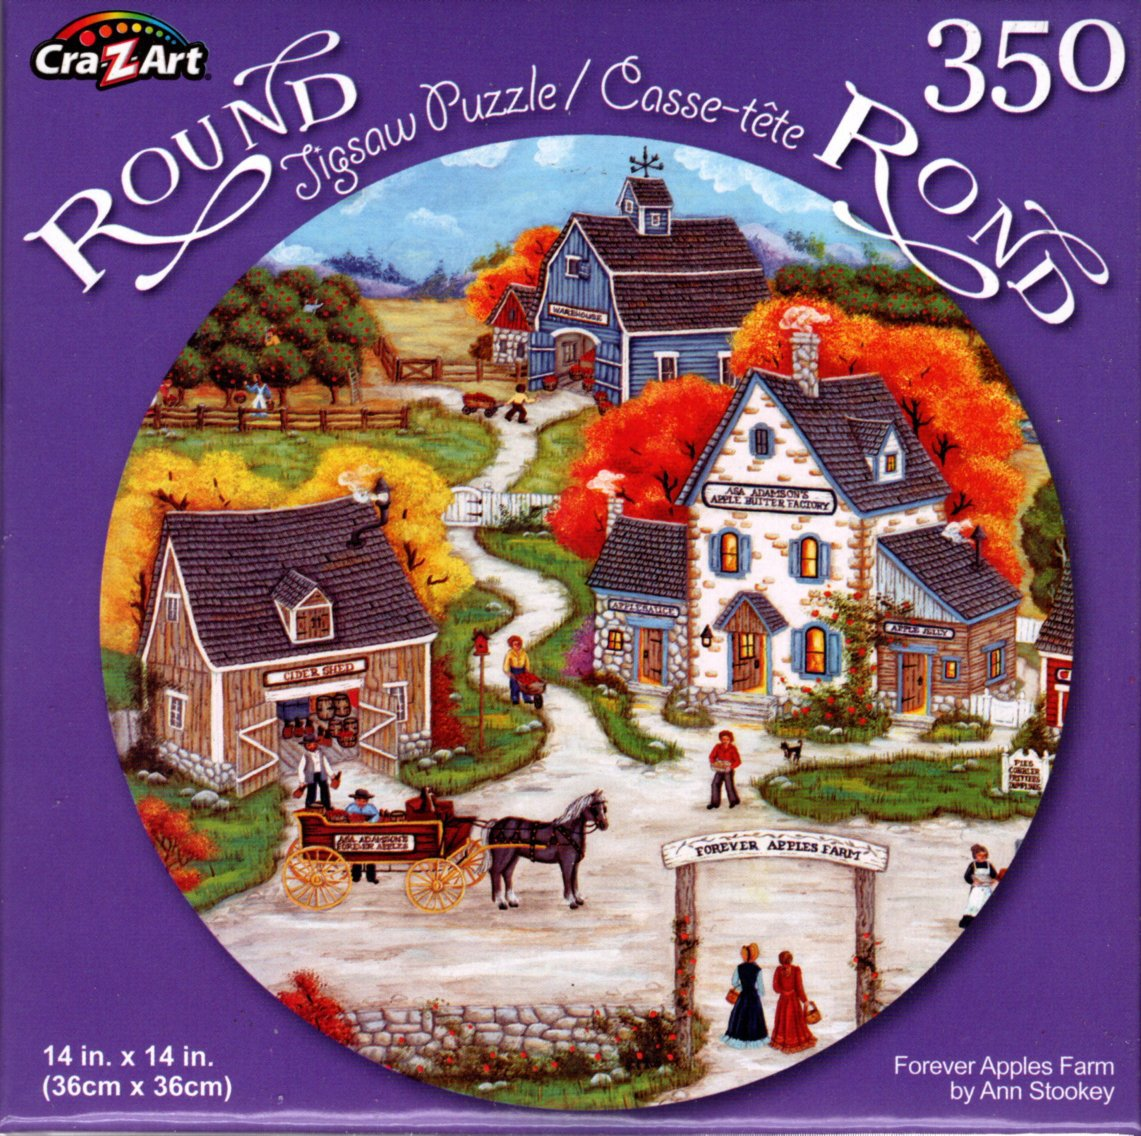 Forever Apples Farm by Ann Stookey - 350 Piece Round Jigsaw Puzzle